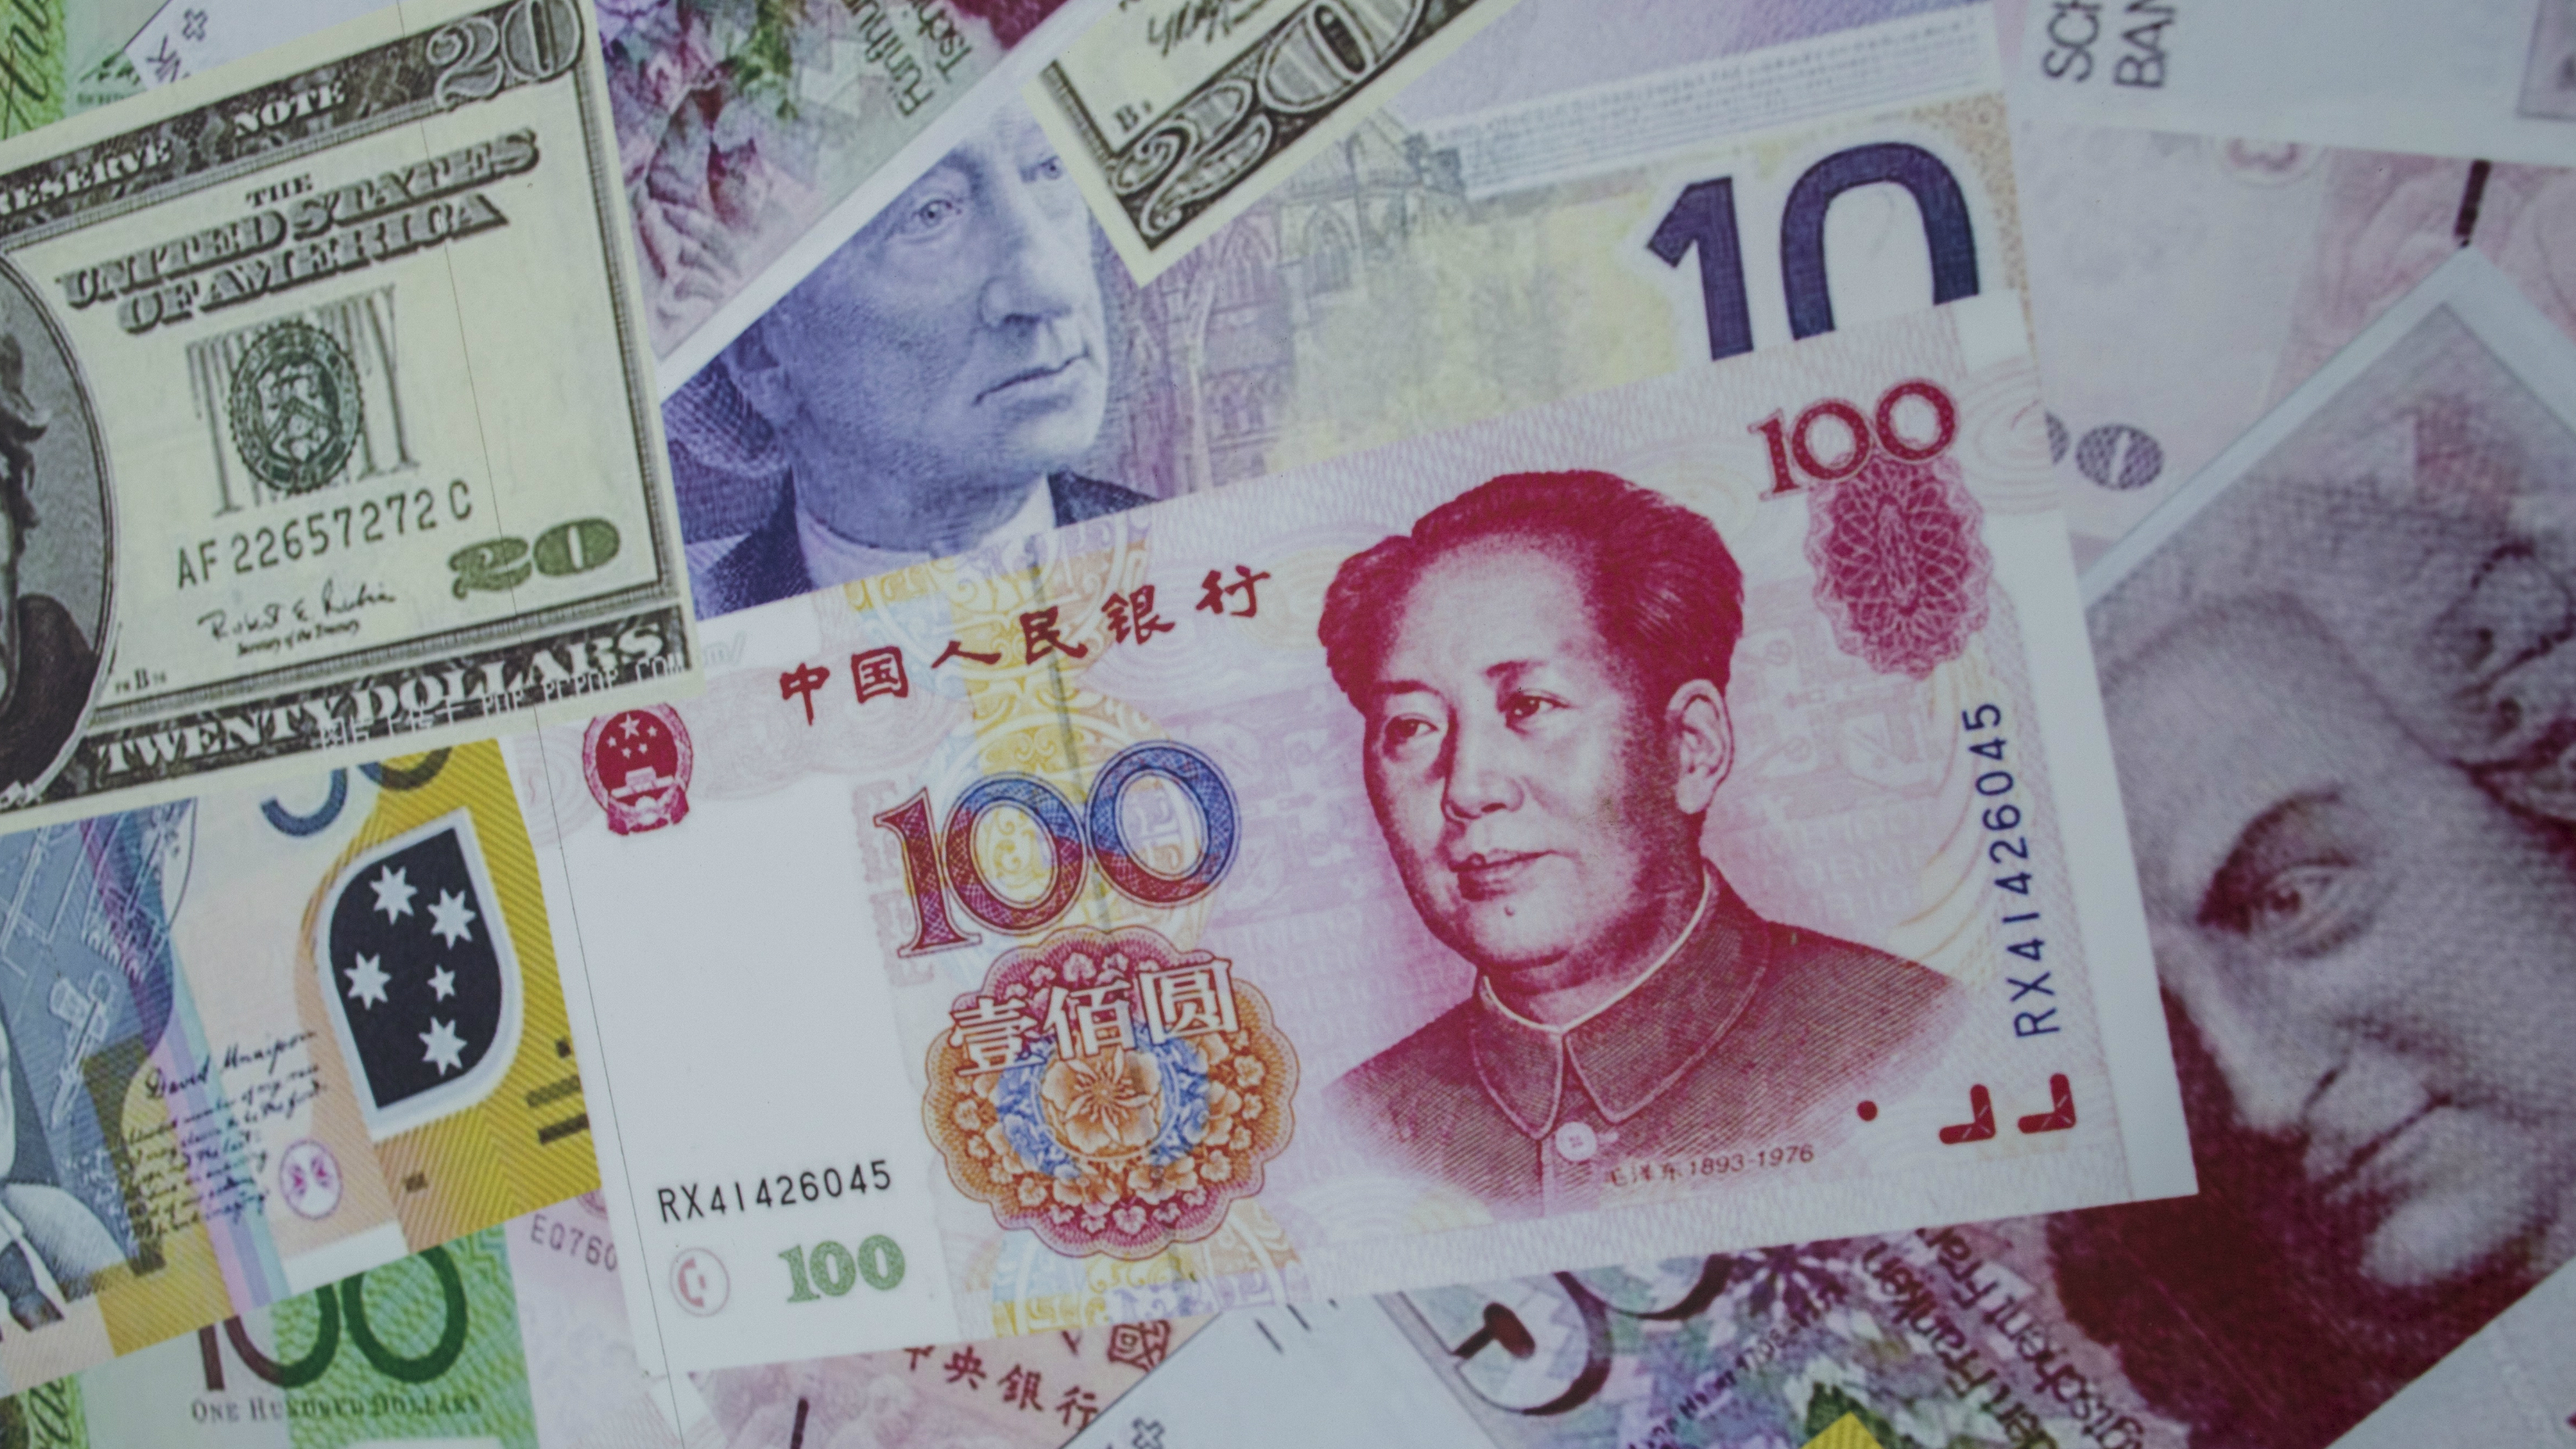 MARKETS-BONDS/EUROSYSTEM IDENTIFIER:RTR4YZ6MCODE:GF10000172717MEDIA DATE13 Aug. 2015PHOTOGRAPHER:Tyrone SiuHEADLINE:An advertisement promoting China's renminbi (RMB) or yuan, U.S. dollar and Euro exchange services is...